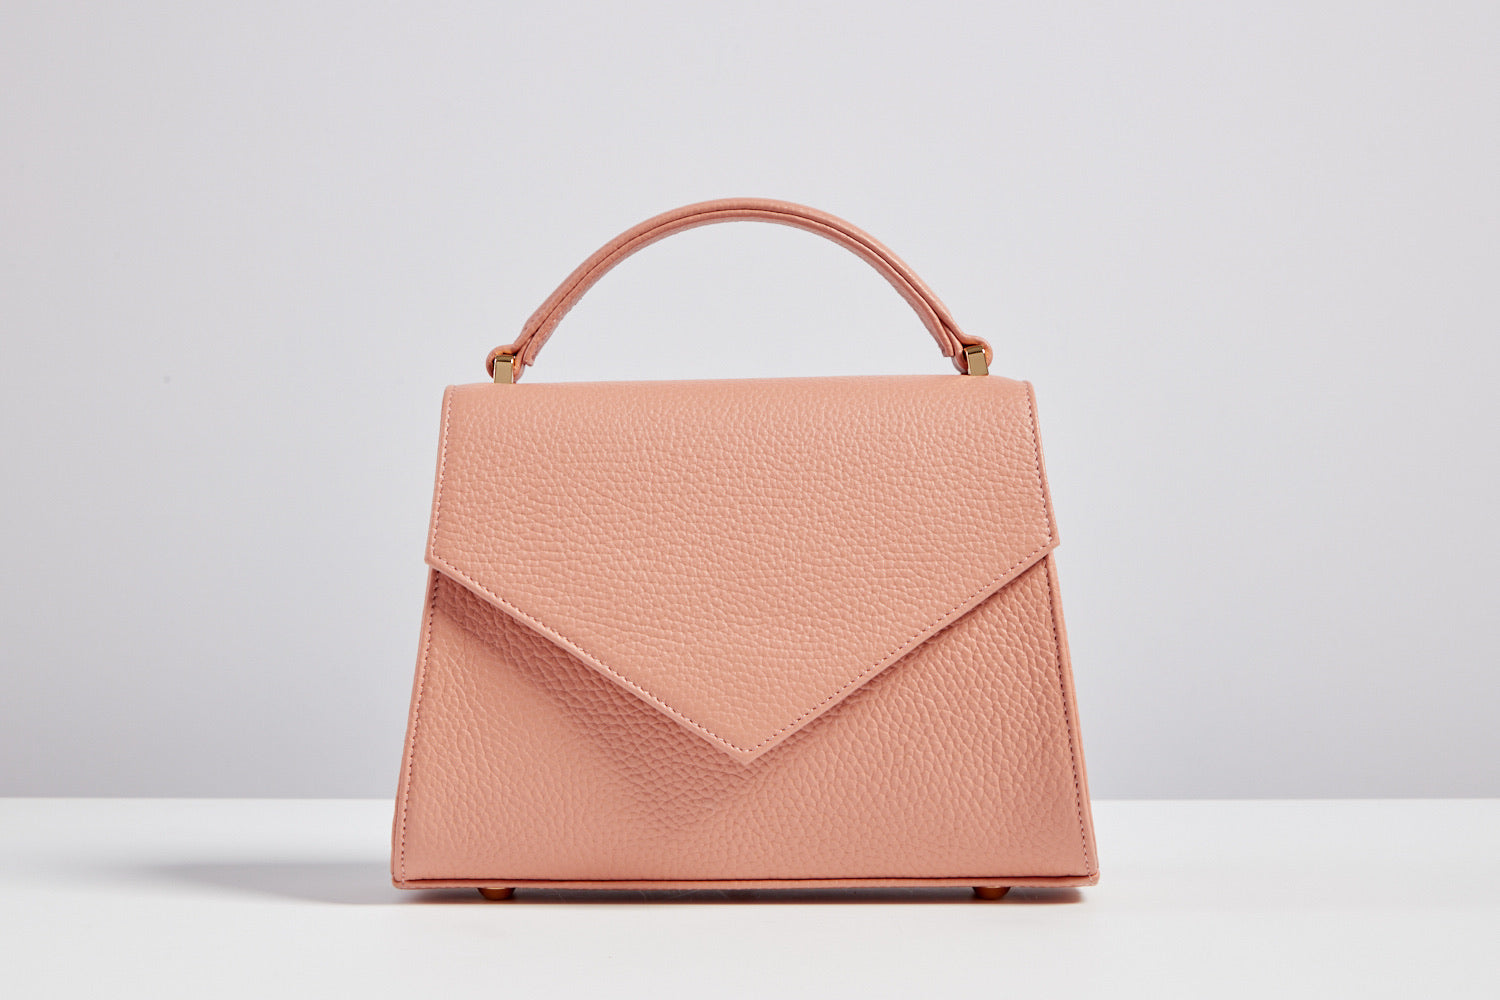 Warm Nude Envelope crossbody bag